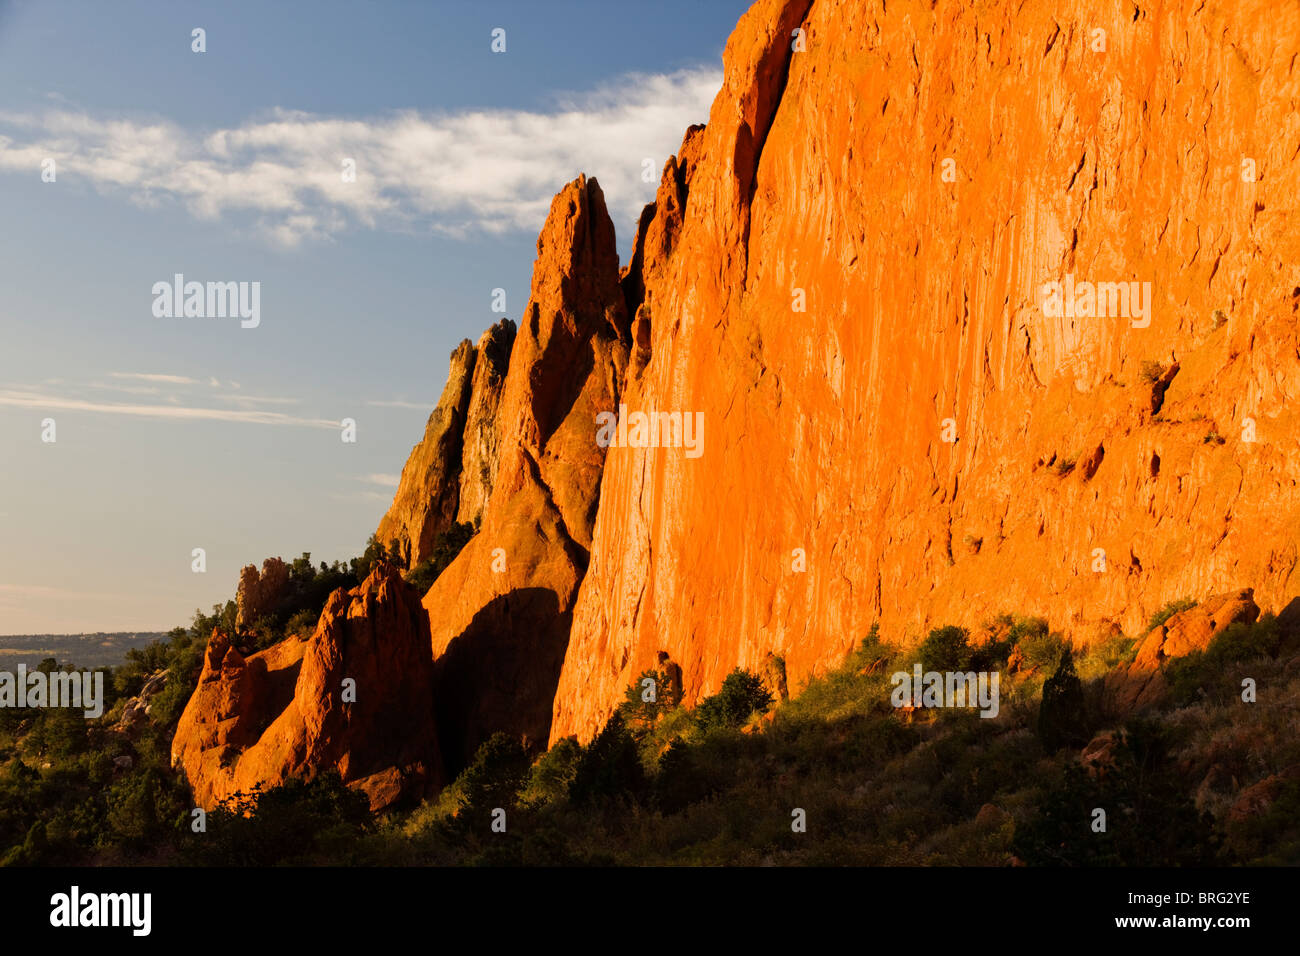 North Gateway Rock, Garden of the Gods.  Years of erosion create unique sandstone formations, Colorado, USA - Stock Image